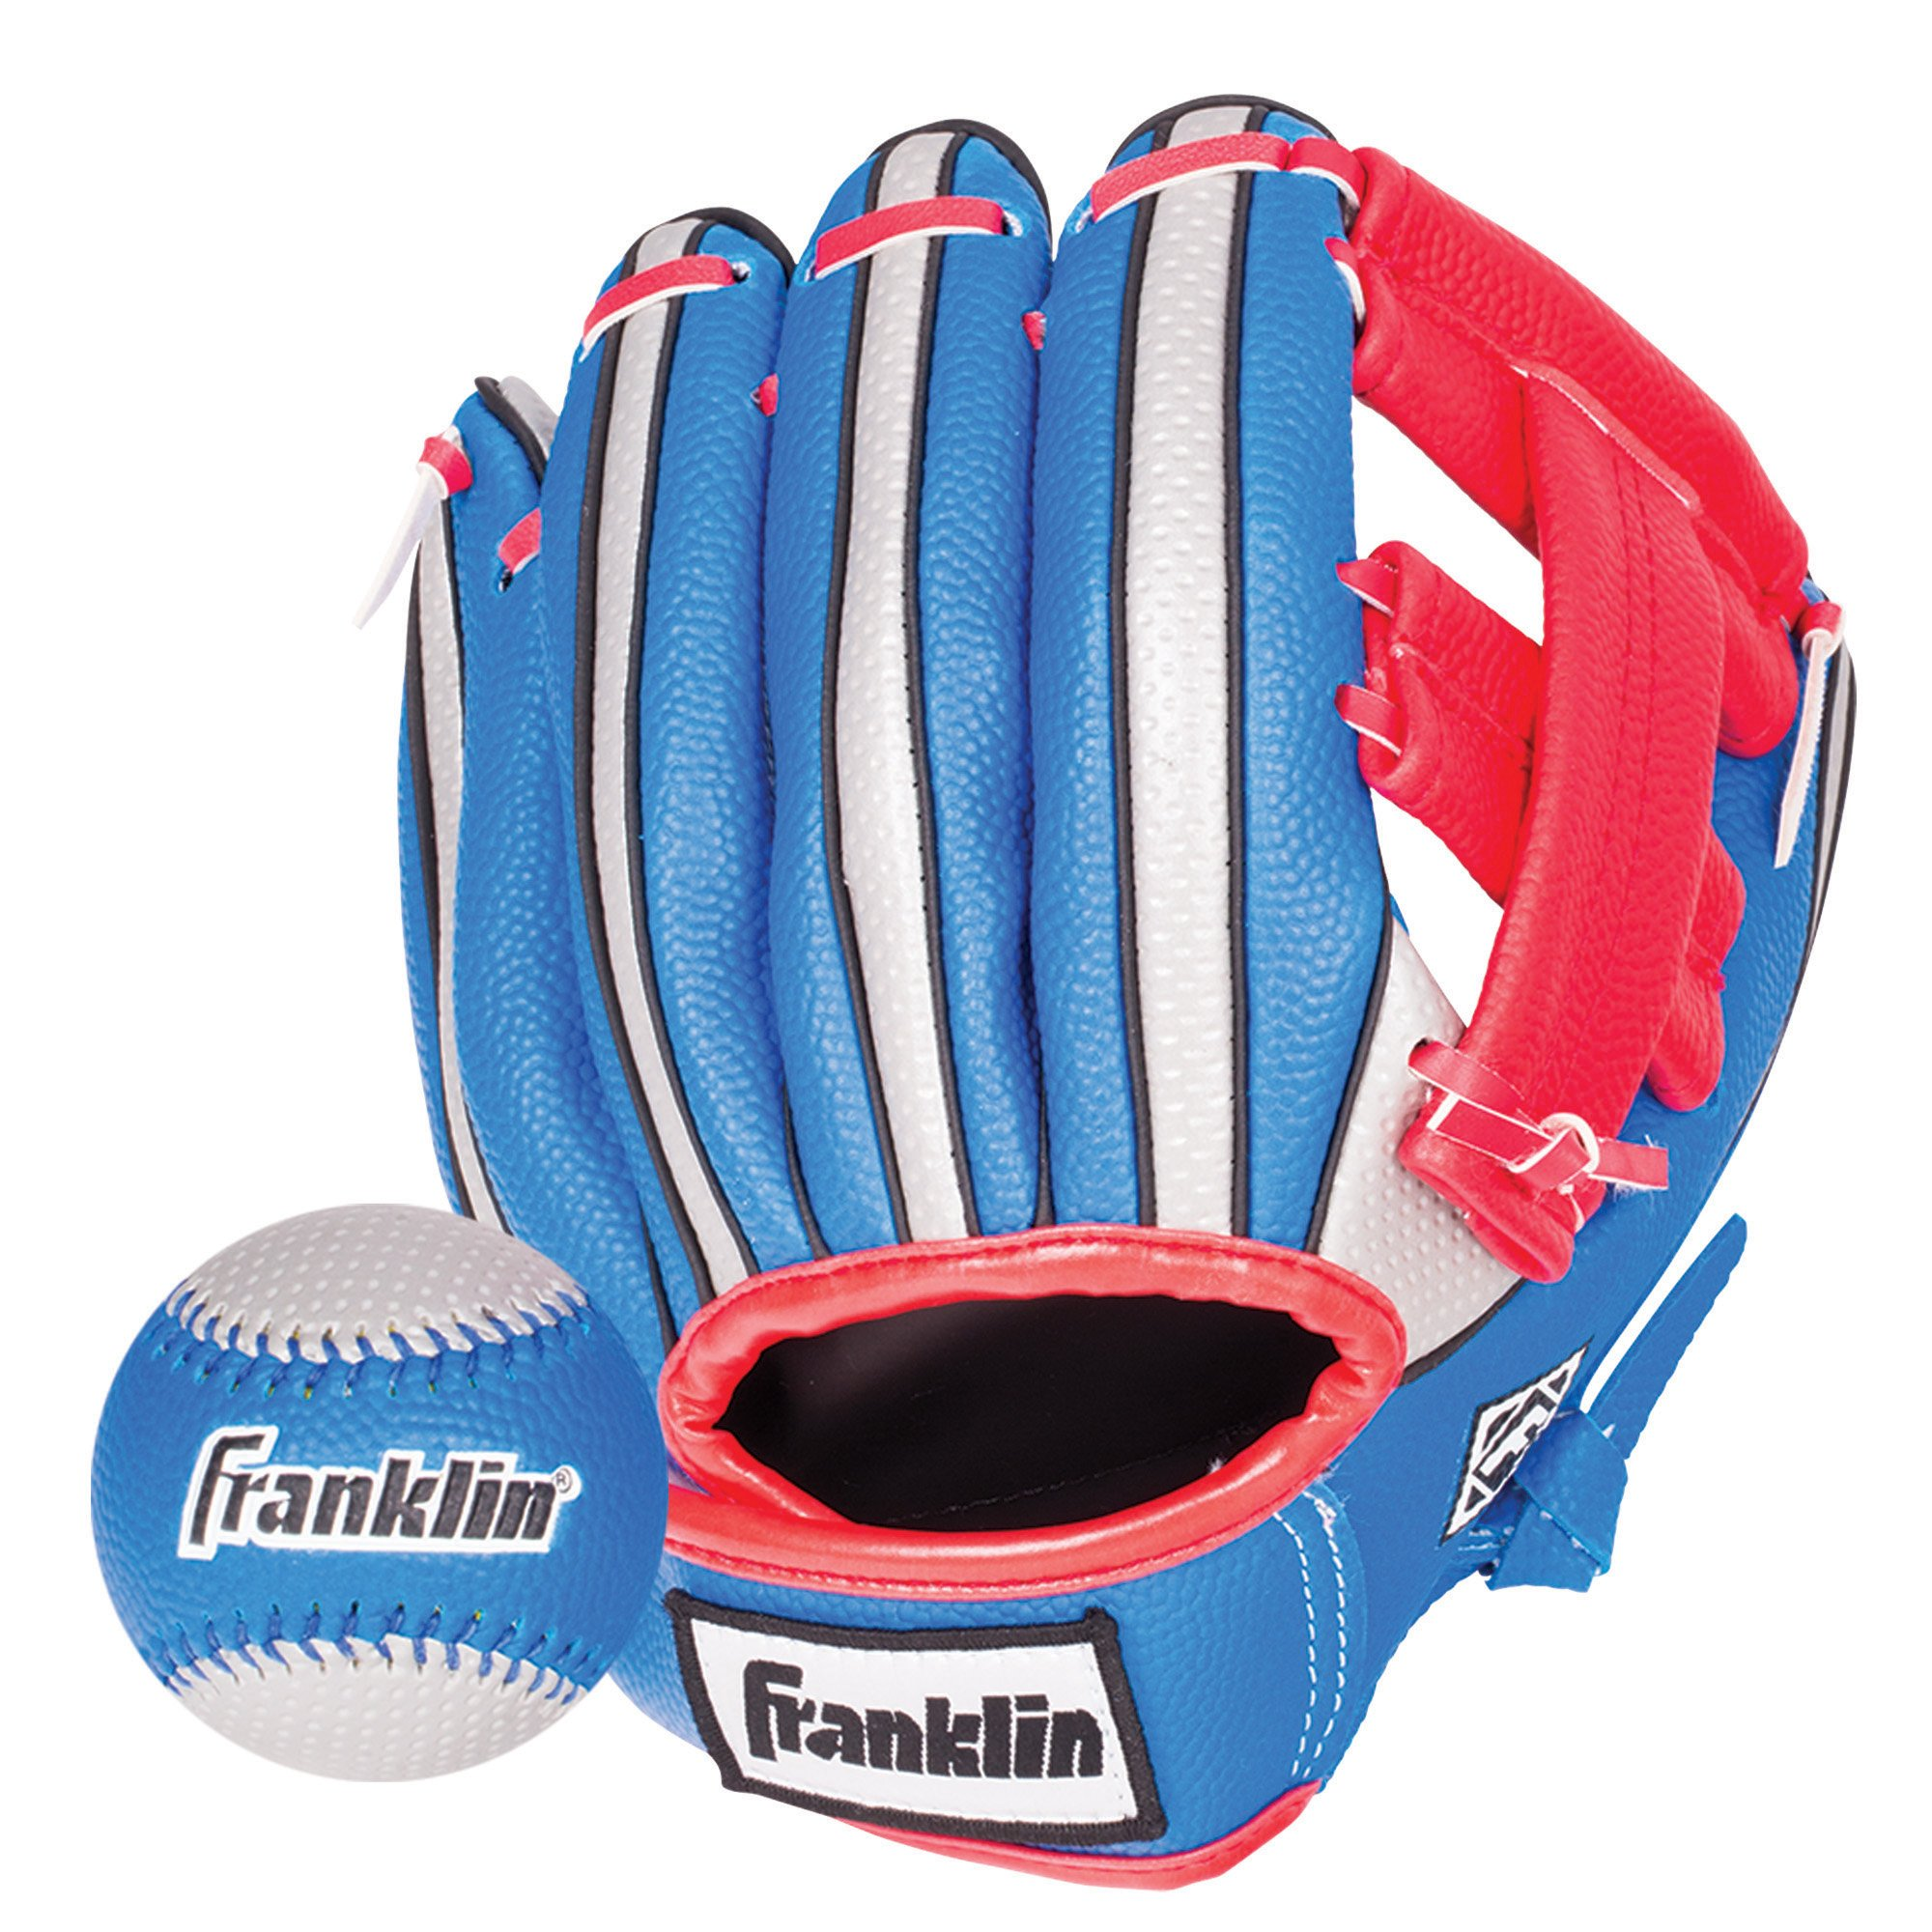 Franklin Sports Air Tech Soft Foam Baseball Glove and Ball Set - 9 Inch - Right Hand Throw by Franklin Sports